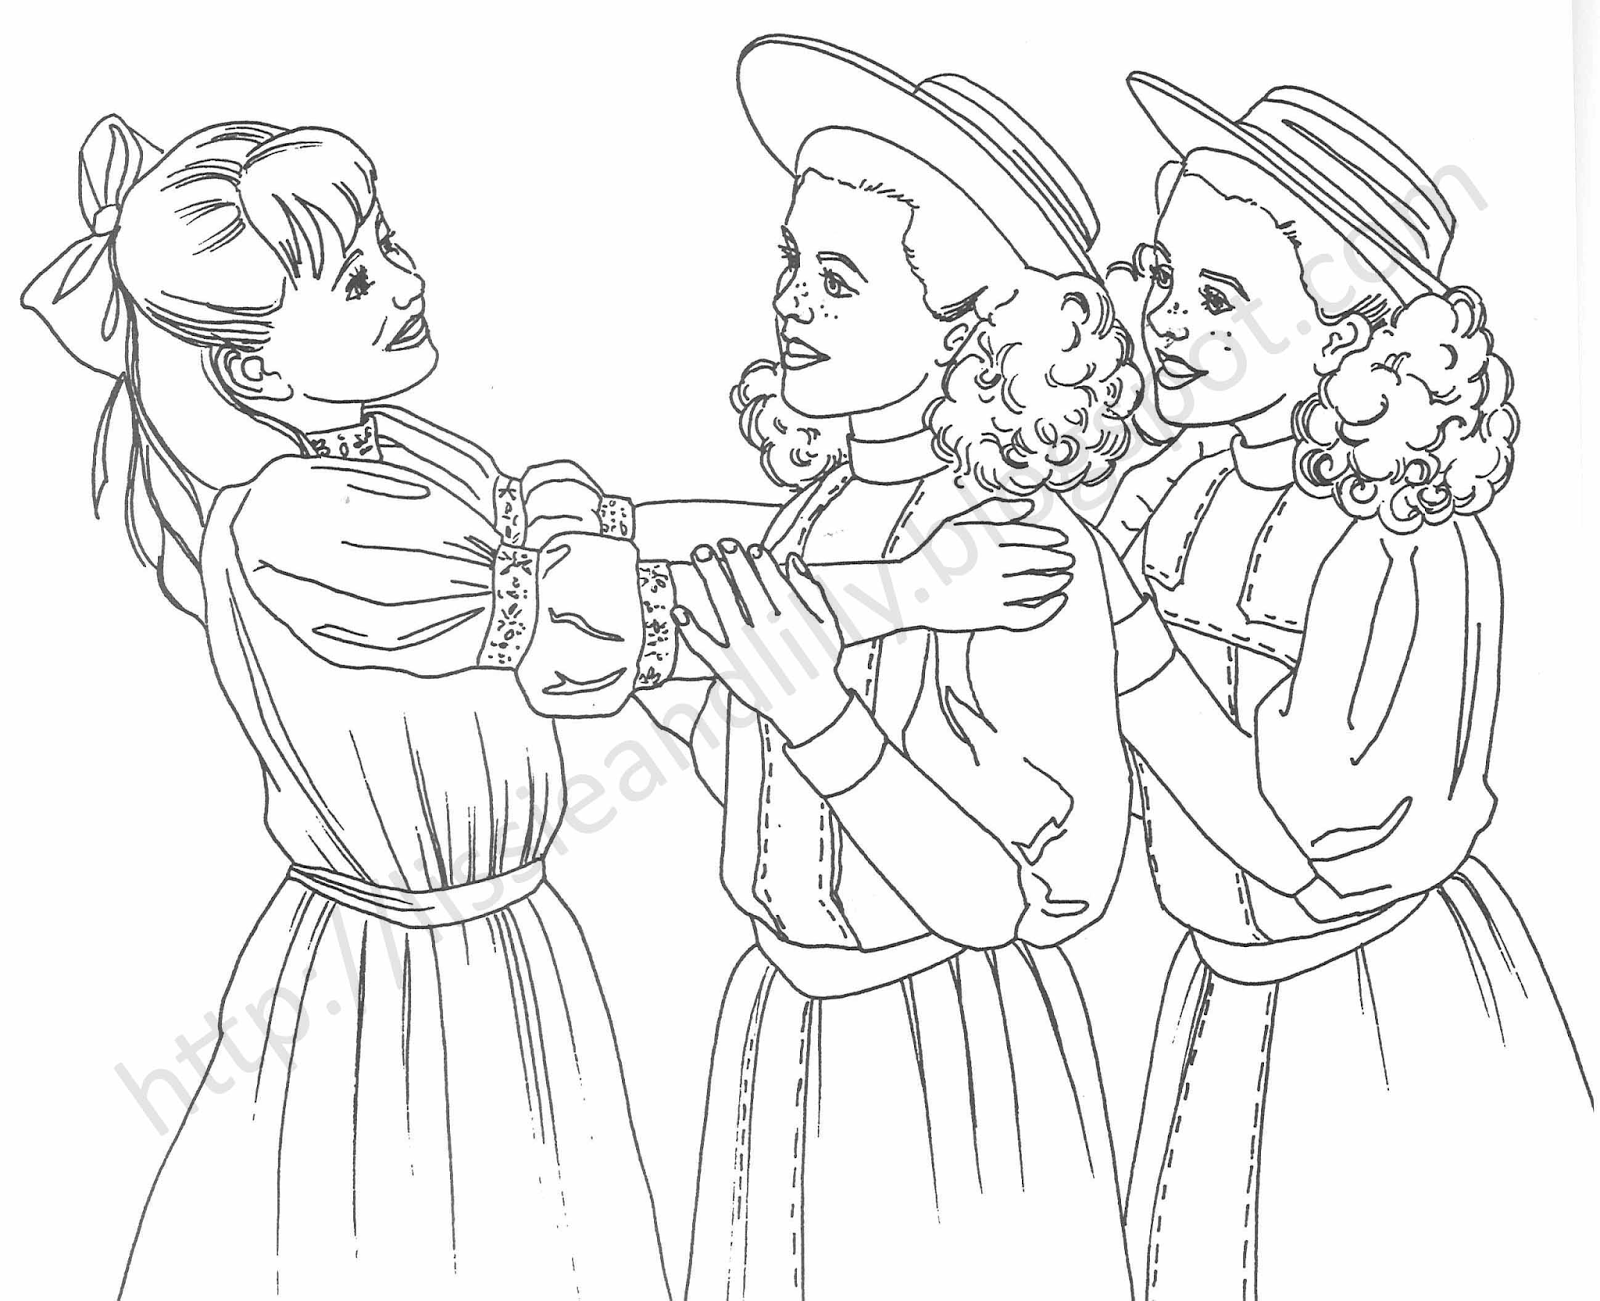 american girl coloring pages grace american girl grace thomas coloring page free printable pages american grace girl coloring